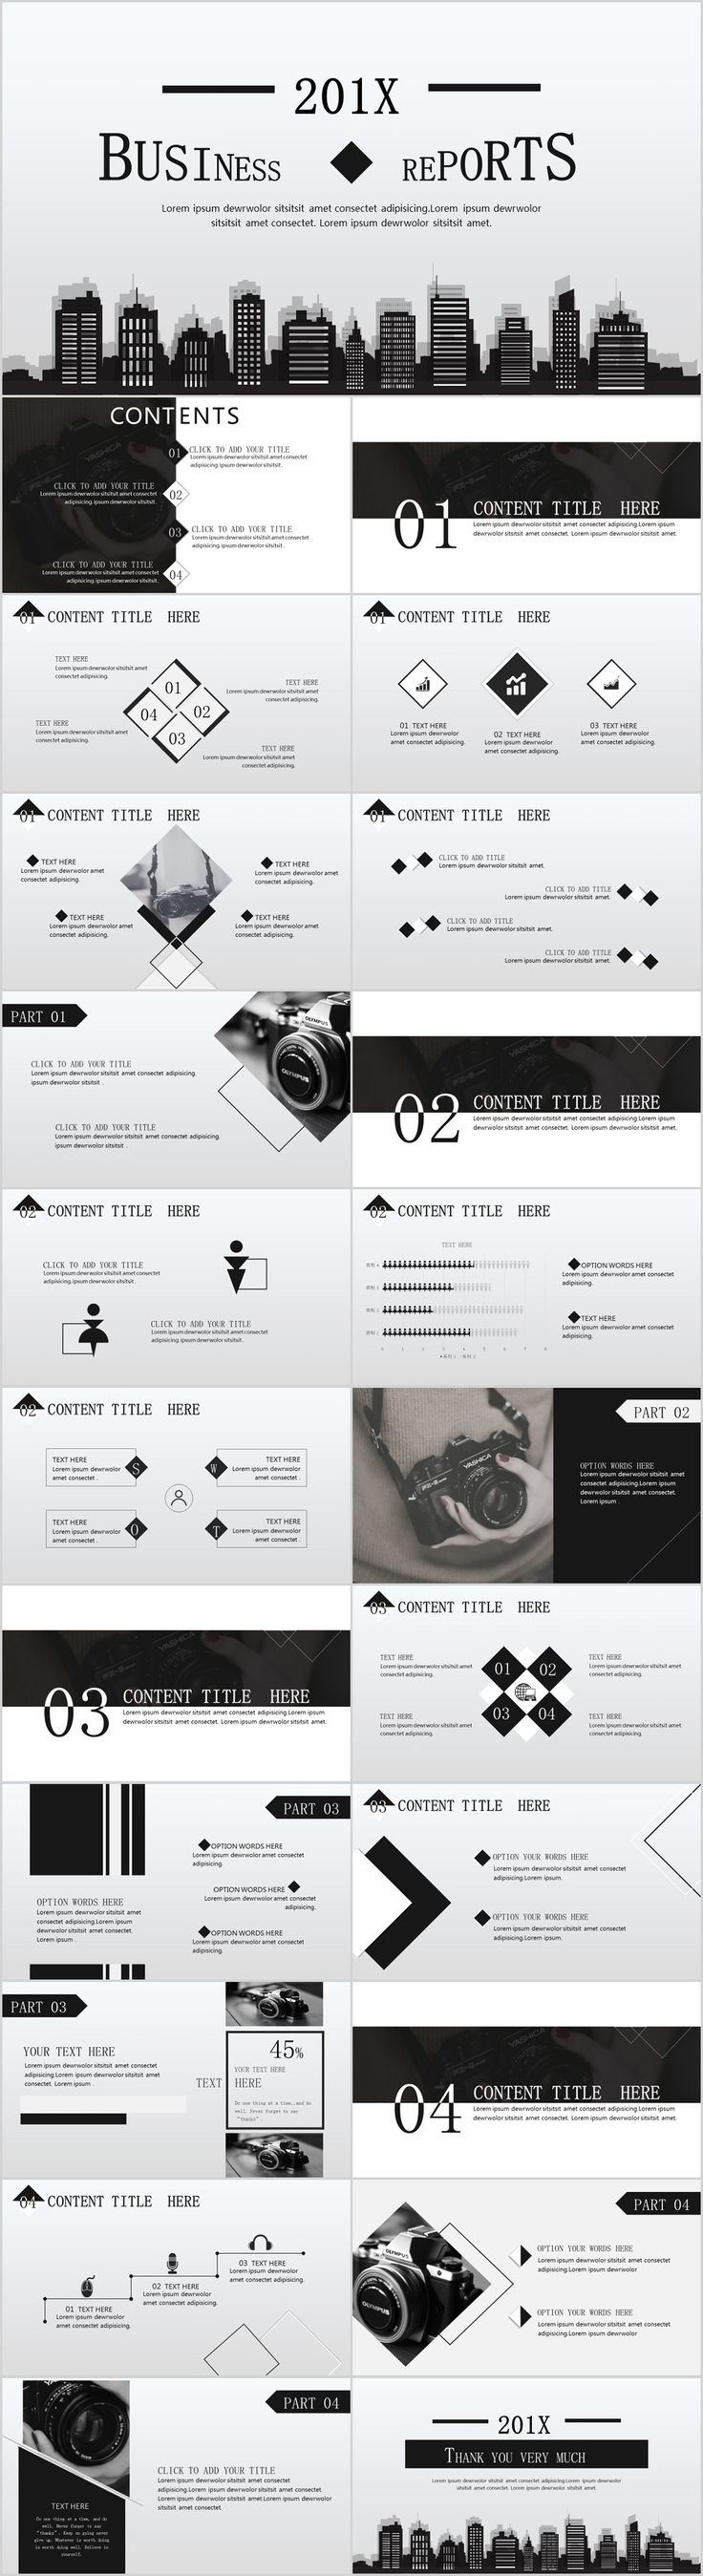 Business infographic gray business report powerpoint template description gray business report powerpoint template toneelgroepblik Gallery